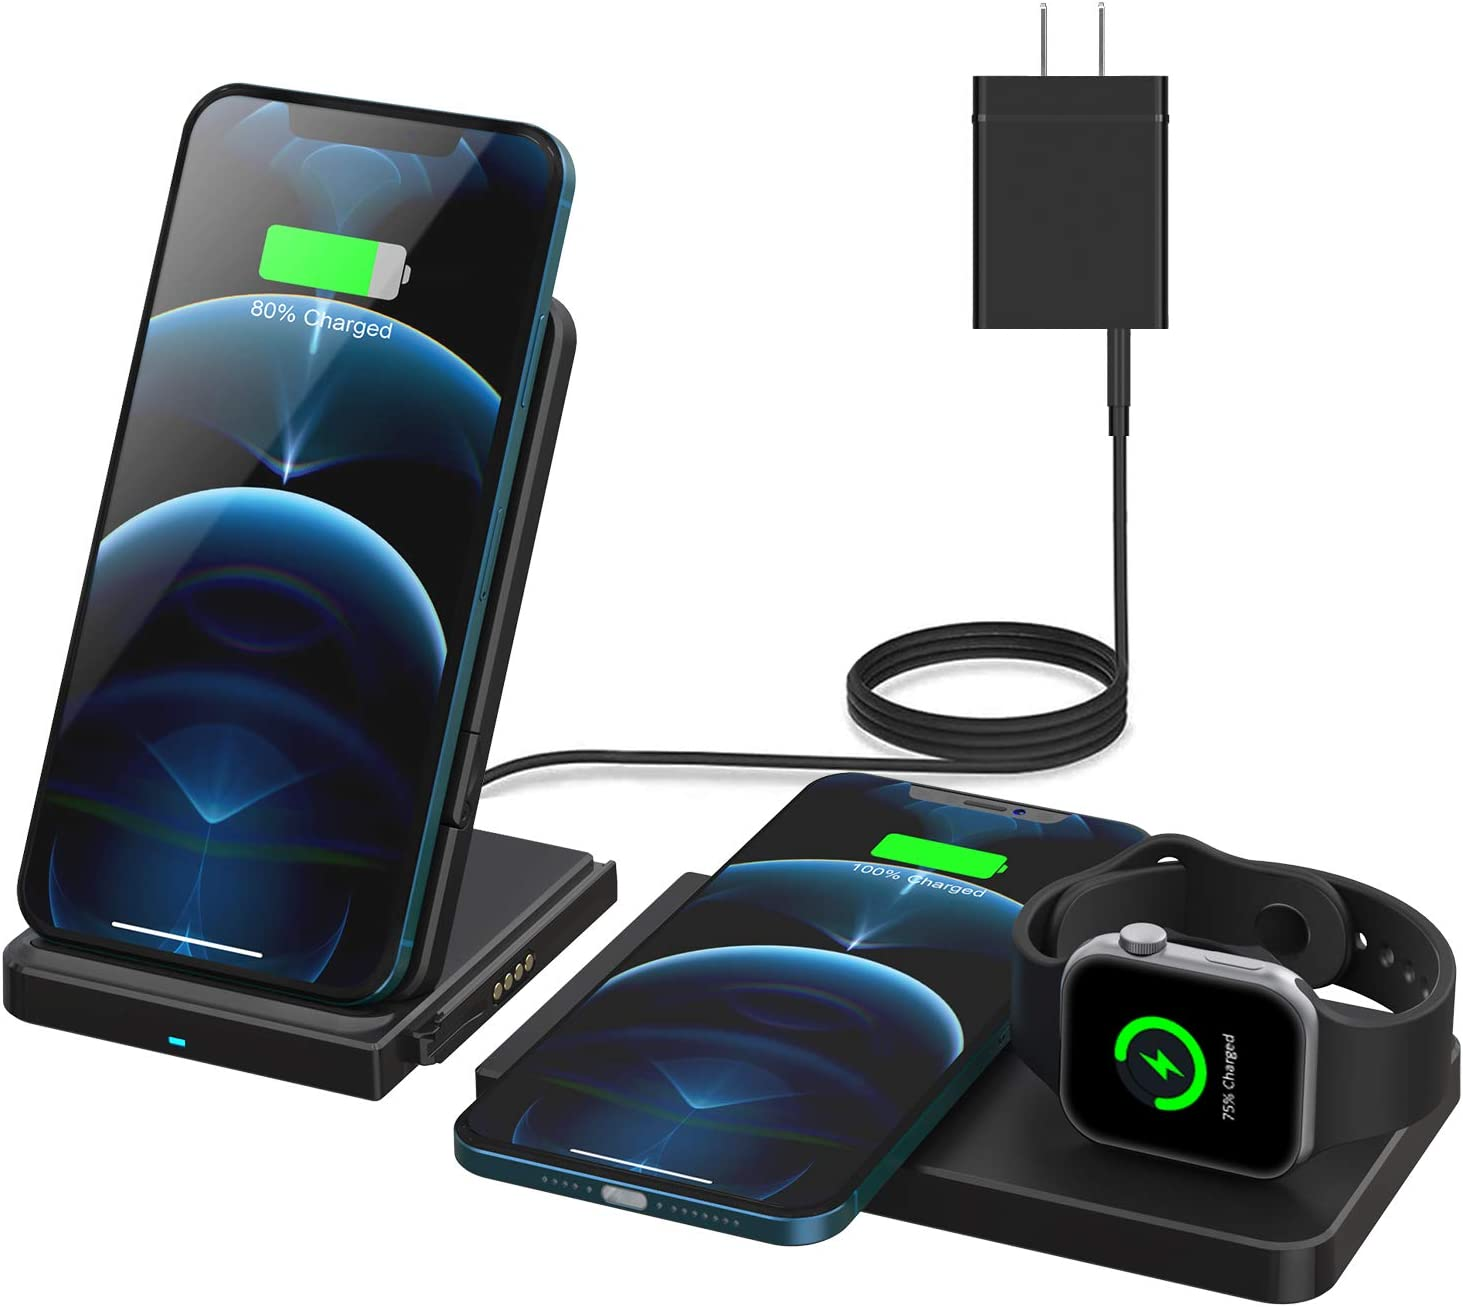 QI-EU Wireless Charger, 24W Fast Wireless Charging Station, Qi-Certified Detachable Charging Stand for Apple iWatch SE/6/5/4/3/2/1 Airpods Pro iPhone 12/12 pro/11/11 Pro/Se/8/X/XS